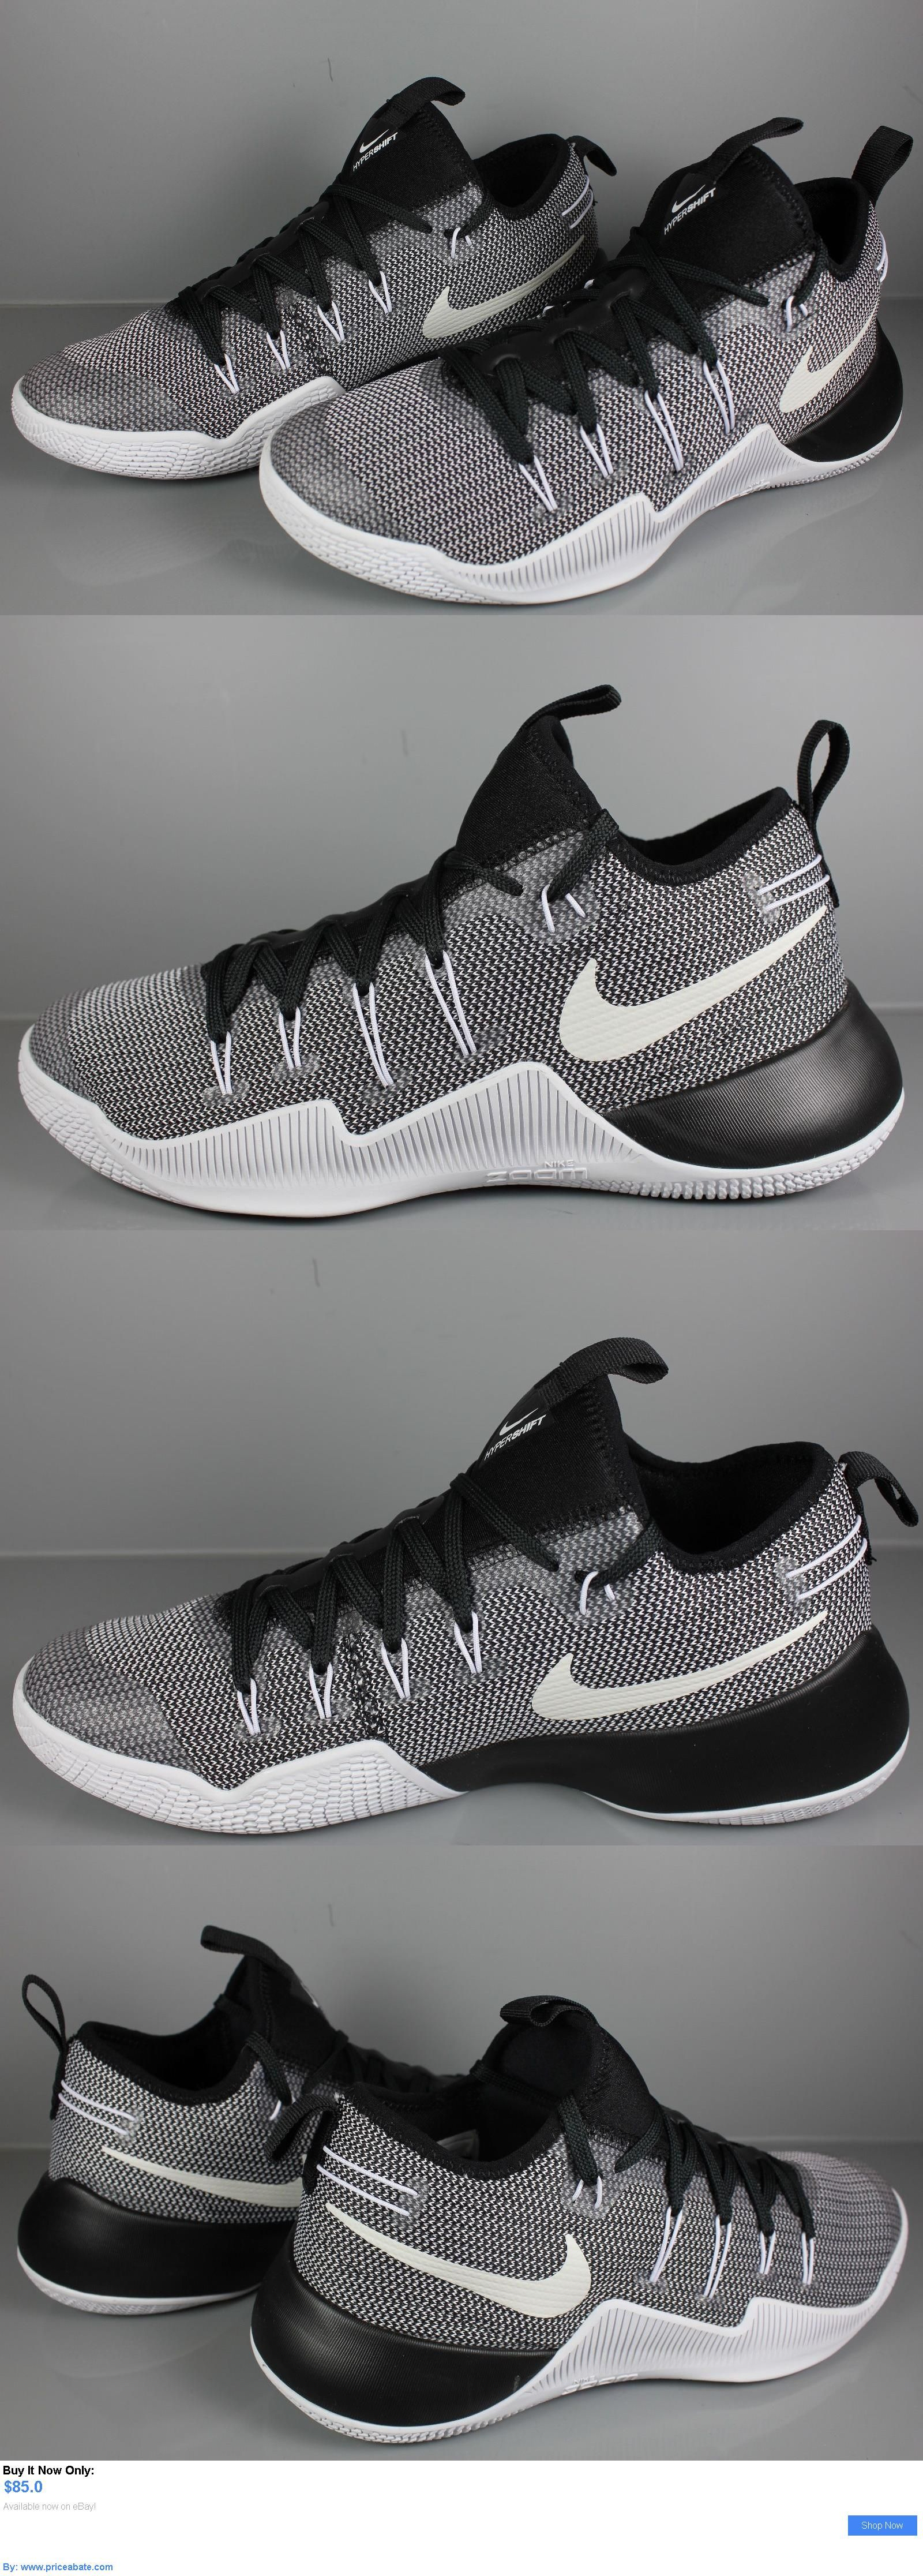 32454f5378c517 Basketball  Nike Hypershift Tb Black White Gray New Mens Basketball Shoes    844387-010 BUY IT NOW ONLY   85.0  priceabateBasketball OR  priceabate ...